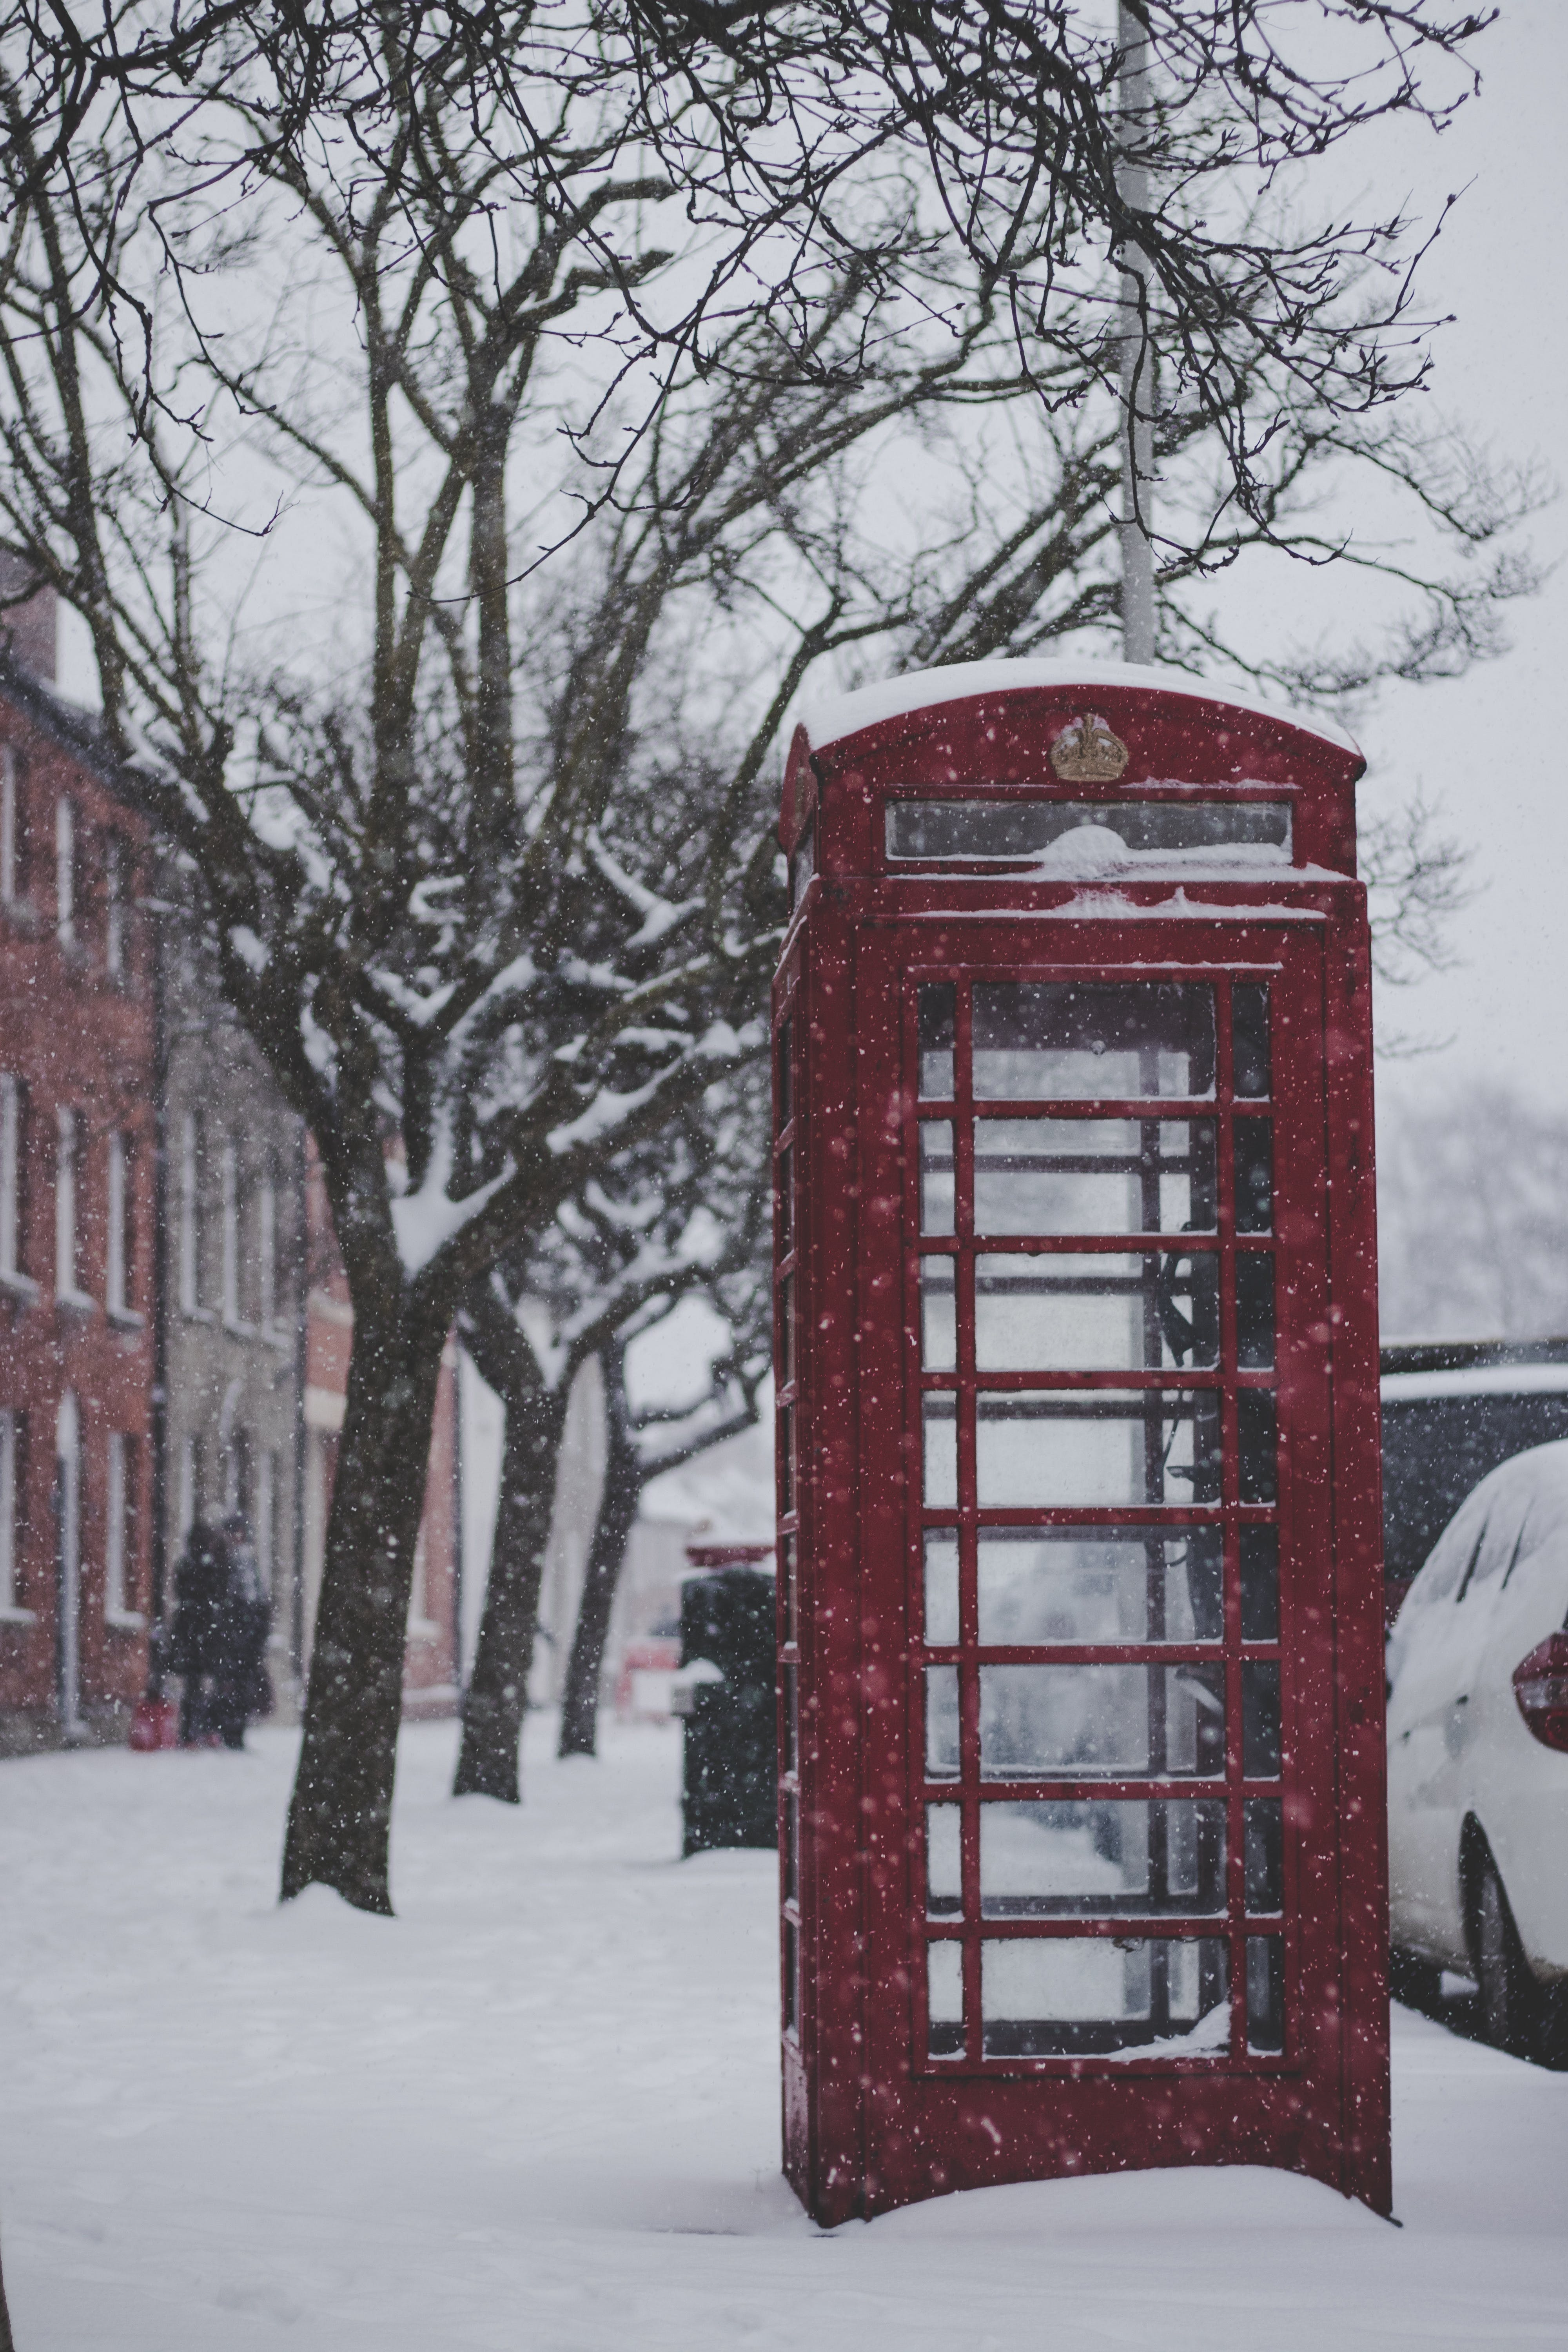 Red Telephone Booth on the Sidewalk With Snow